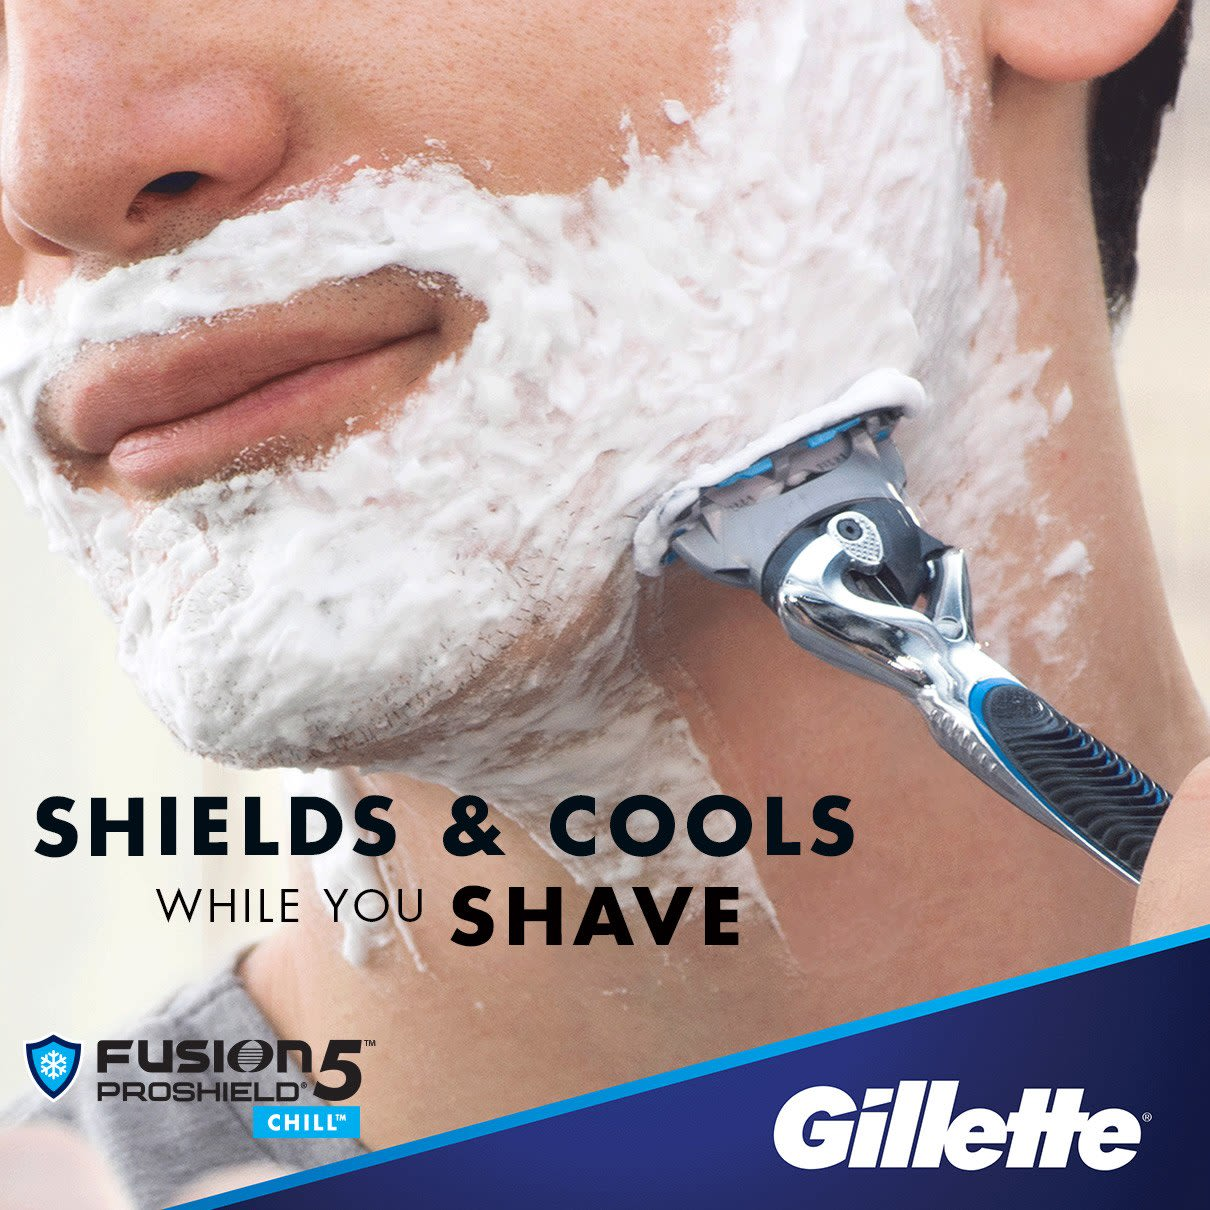 shields & cools while you shave